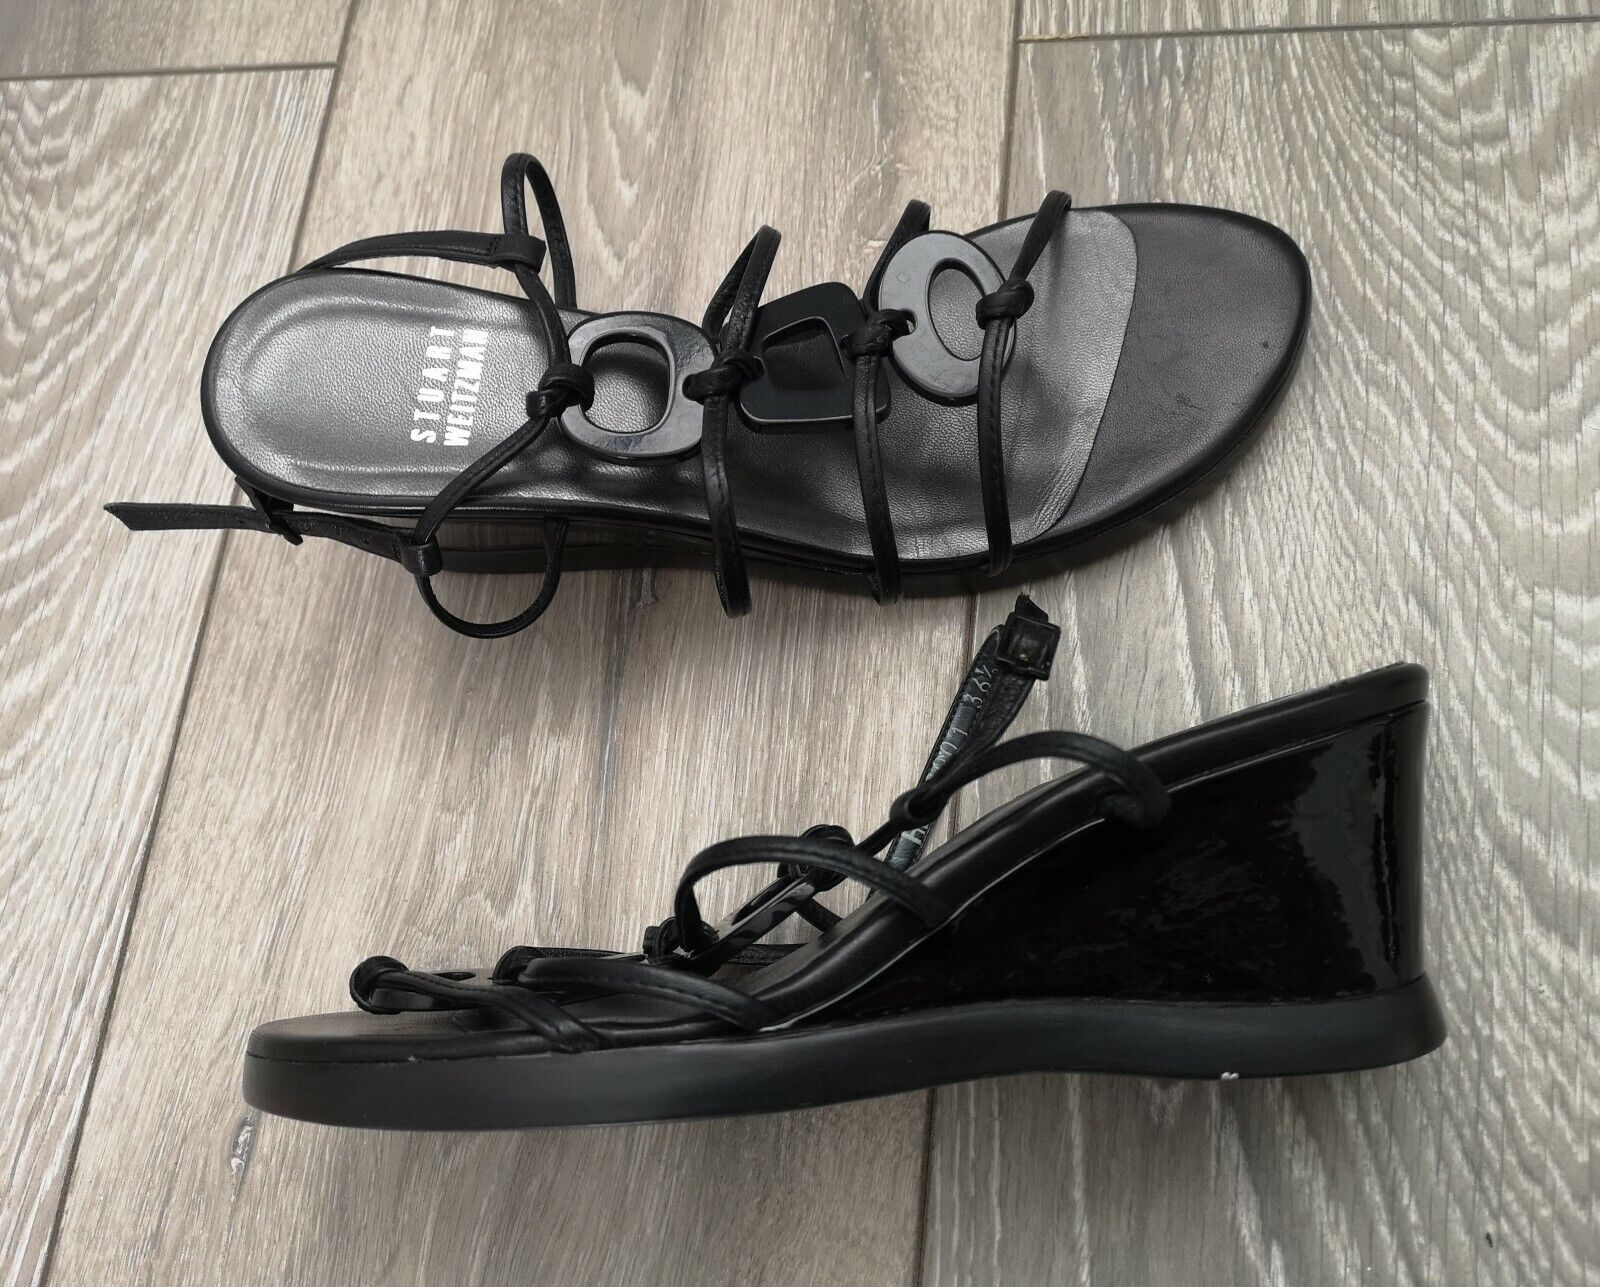 STUART WEITZMAN Black Strappy Leather Sandals Wedges Heels shoes UK 3.5 EU 36.5